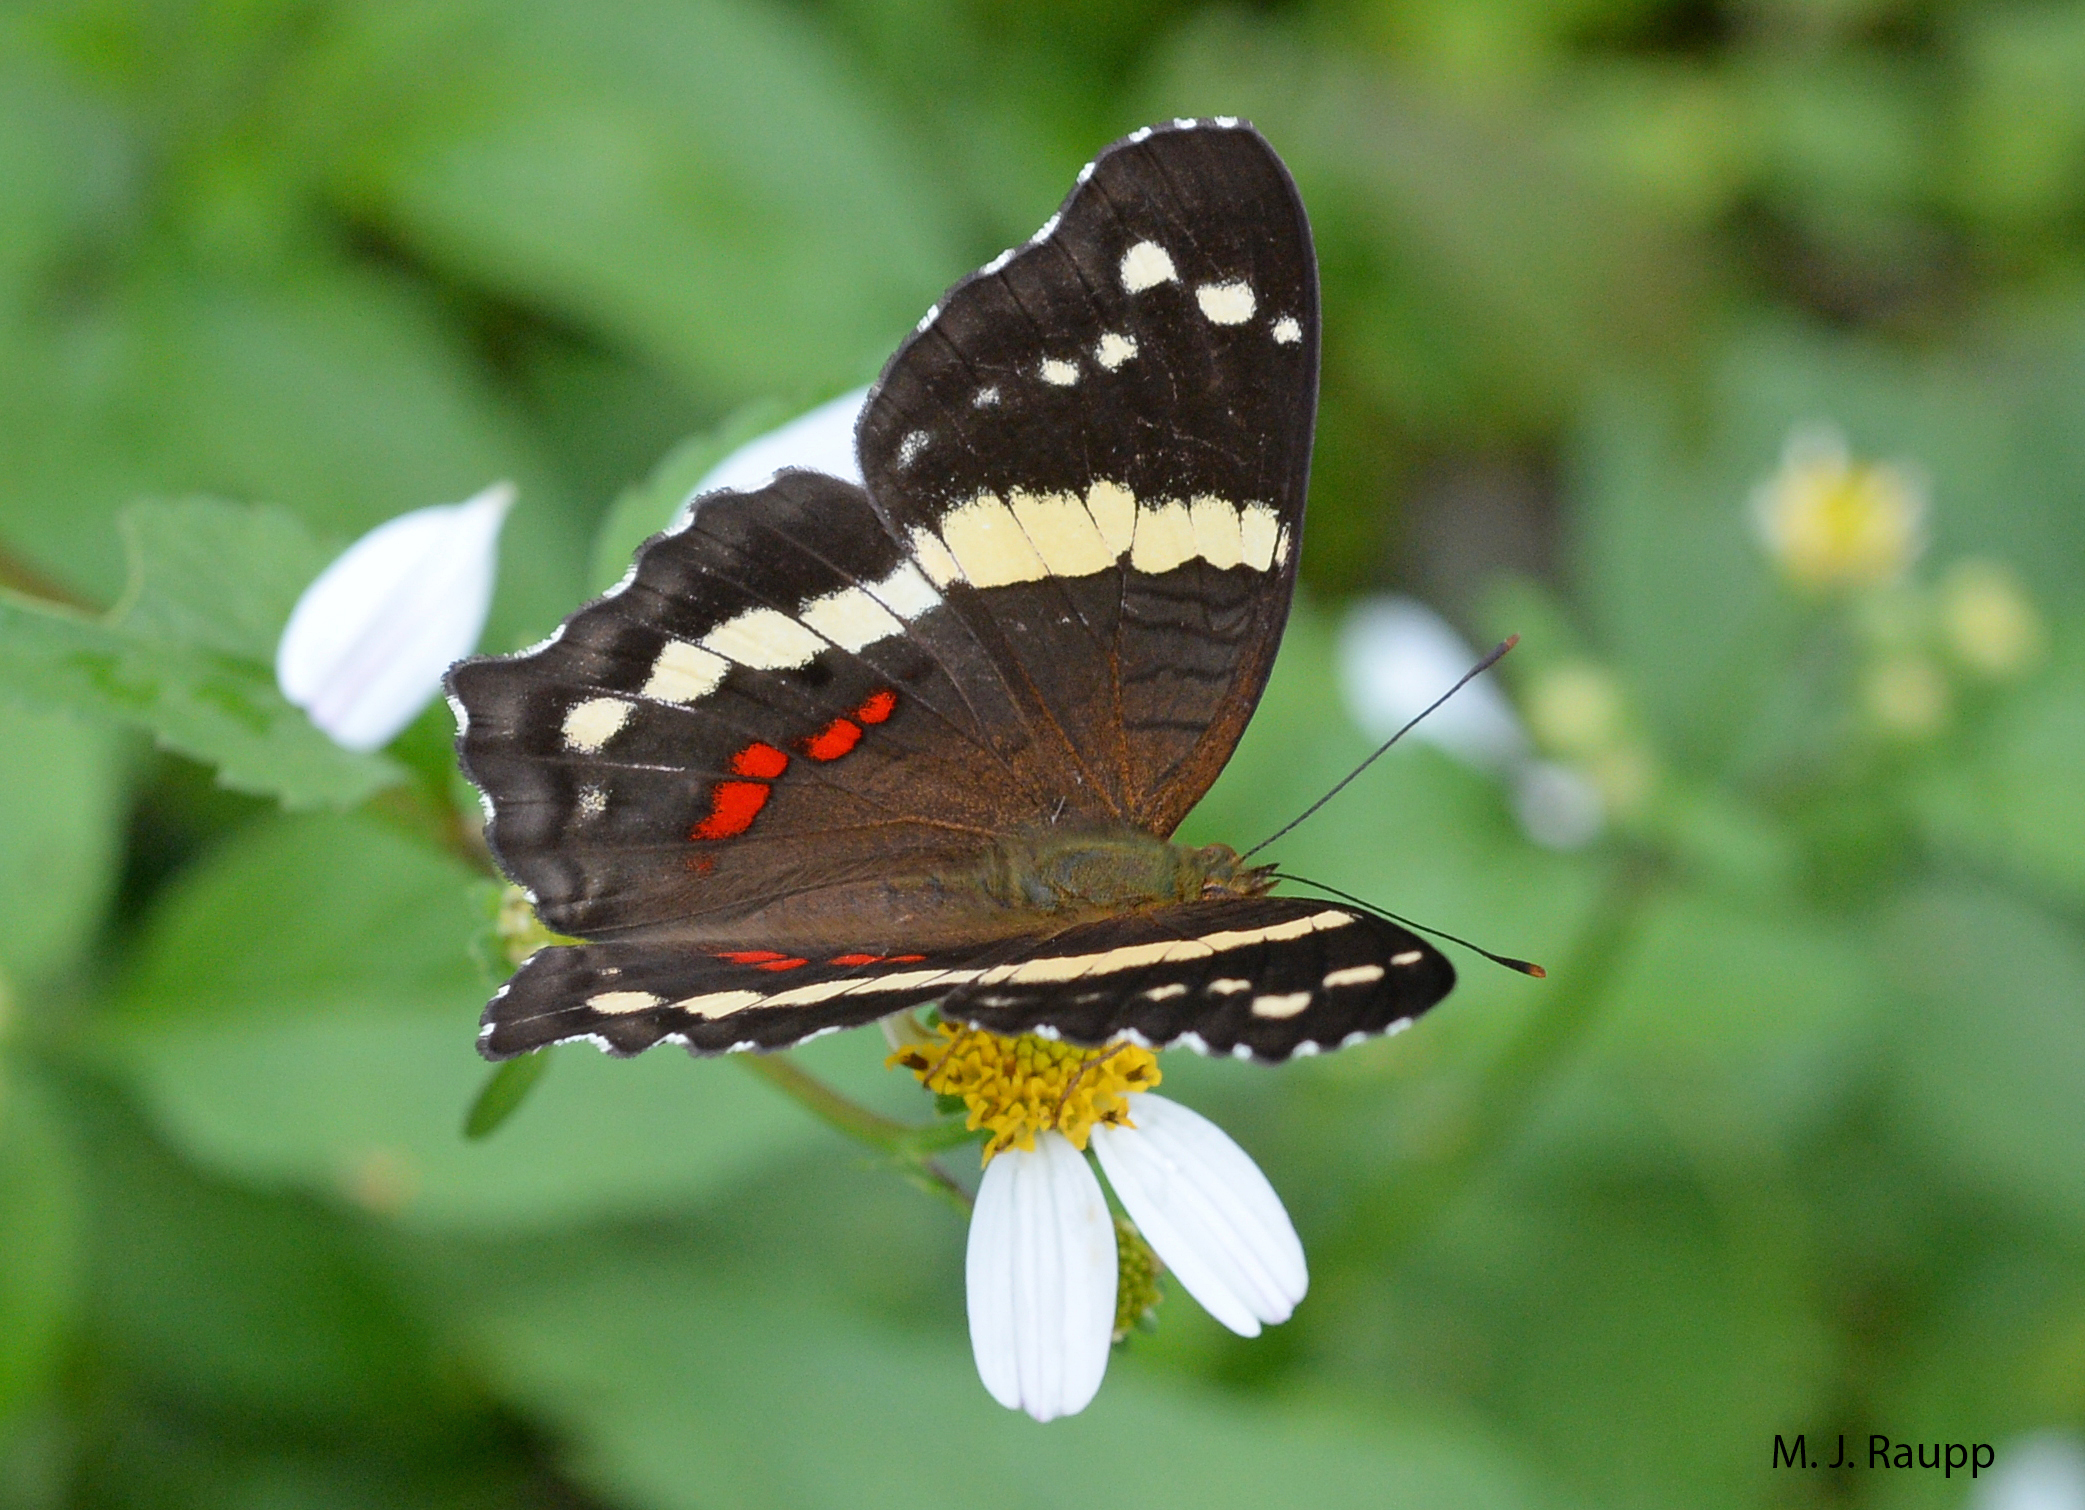 """Contrasting colors of dorsal wing bars make the banded peacock one of the most beautiful butterflies in the rainforest.     Normal   0           false   false   false     EN-US   X-NONE   X-NONE                                                                                                                                                                                                                                                                                                                                                                    /* Style Definitions */  table.MsoNormalTable {mso-style-name:""""Table Normal""""; mso-tstyle-rowband-size:0; mso-tstyle-colband-size:0; mso-style-noshow:yes; mso-style-priority:99; mso-style-parent:""""""""; mso-padding-alt:0in 5.4pt 0in 5.4pt; mso-para-margin-top:0in; mso-para-margin-right:0in; mso-para-margin-bottom:10.0pt; mso-para-margin-left:0in; line-height:115%; mso-pagination:widow-orphan; font-size:11.0pt; font-family:""""Calibri"""",""""sans-serif""""; mso-ascii-font-family:Calibri; mso-ascii-theme-font:minor-latin; mso-hansi-font-family:Calibri; mso-hansi-theme-font:minor-latin;}"""